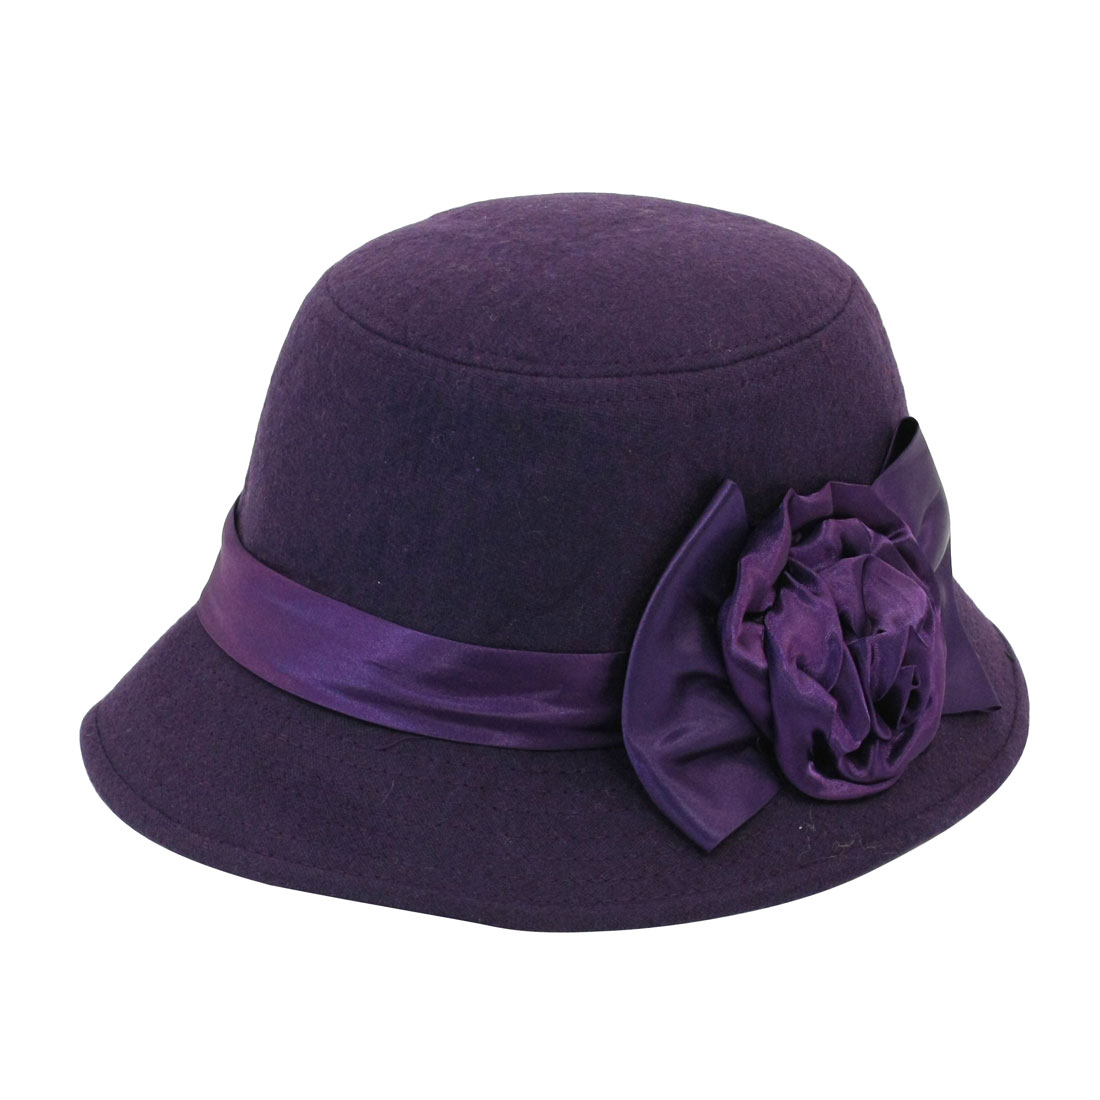 Flower Bowtie Detail Top Stitching Cloche Bucket Hat Purple for Lady